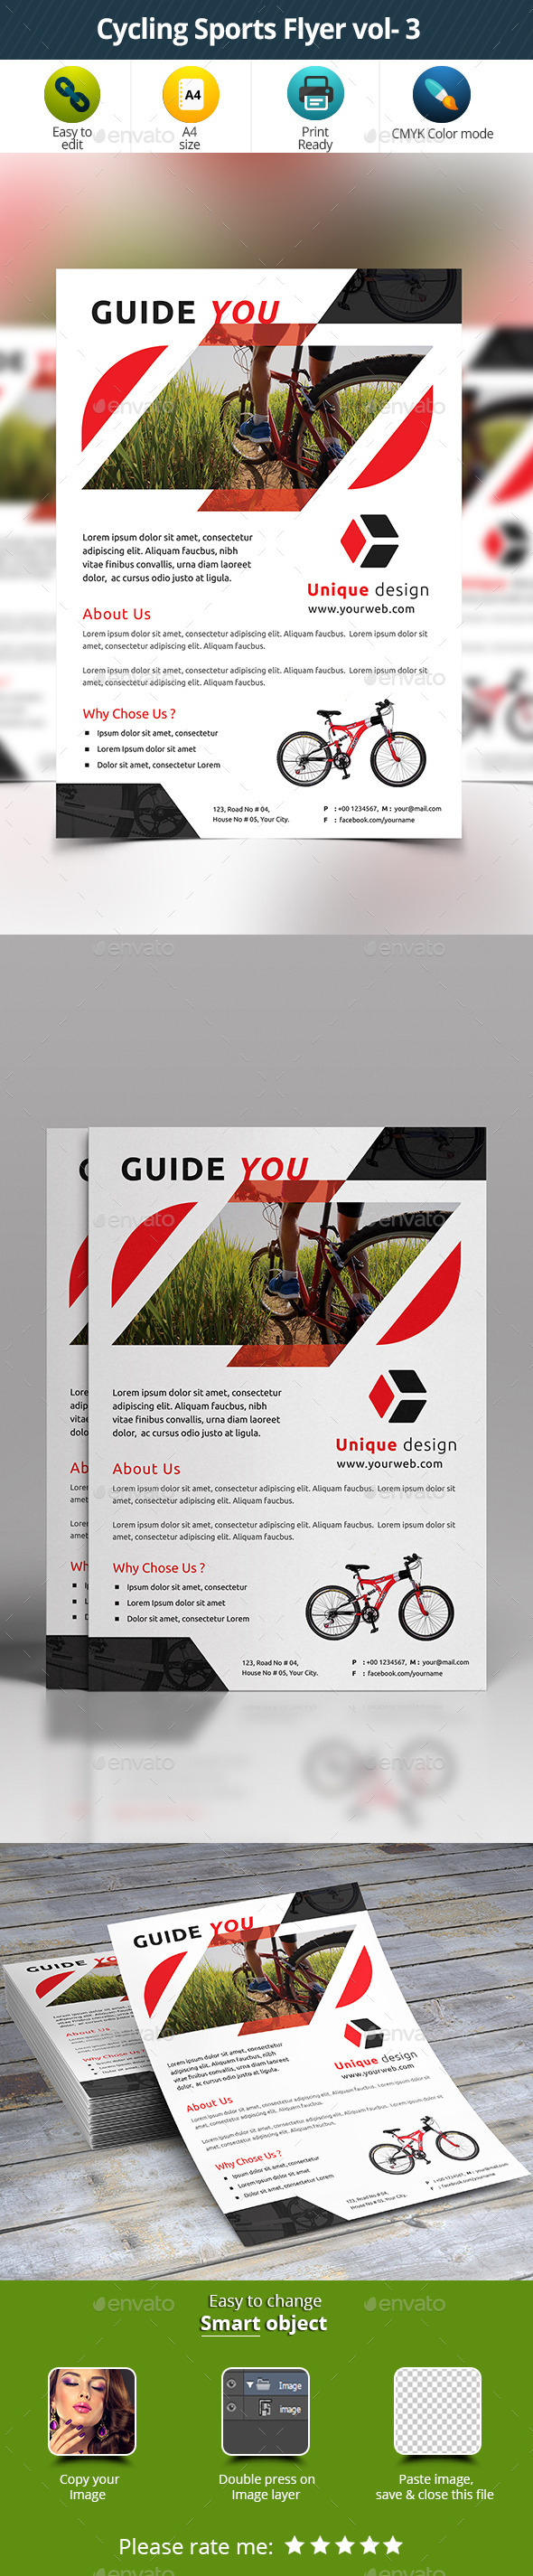 Cycling Sports Flyer vol- 3 - Sports Events